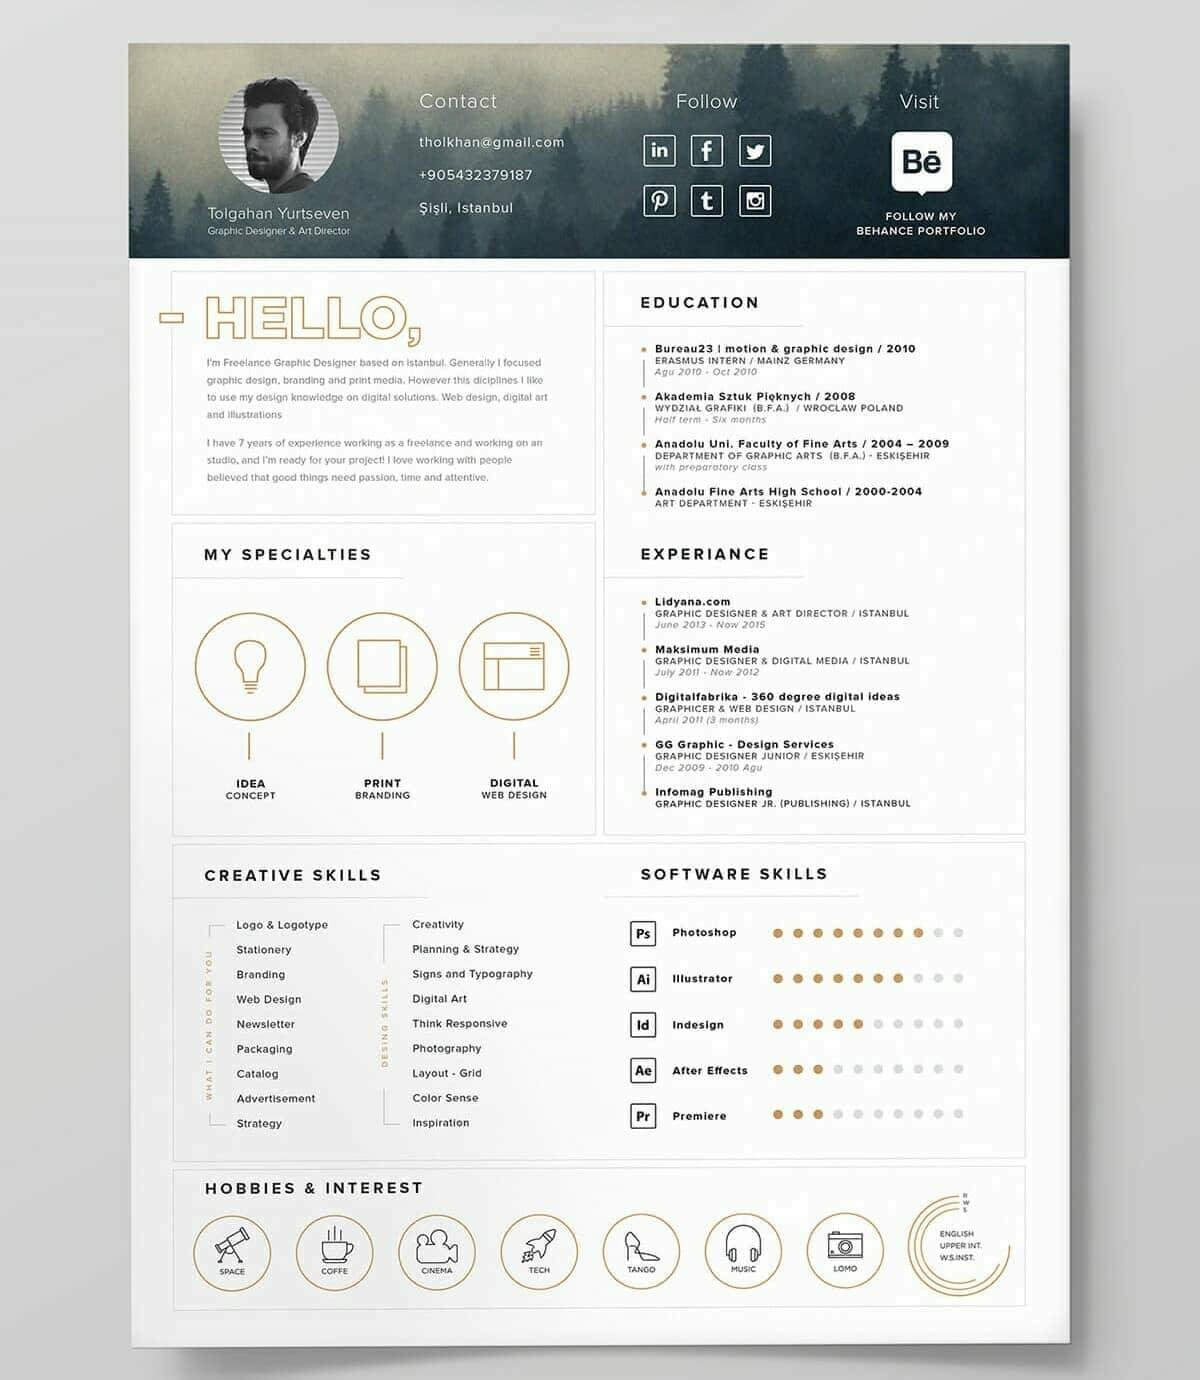 resume Best Resume Images best resume templates 15 examples to download use right away free template with creative header and gold icons